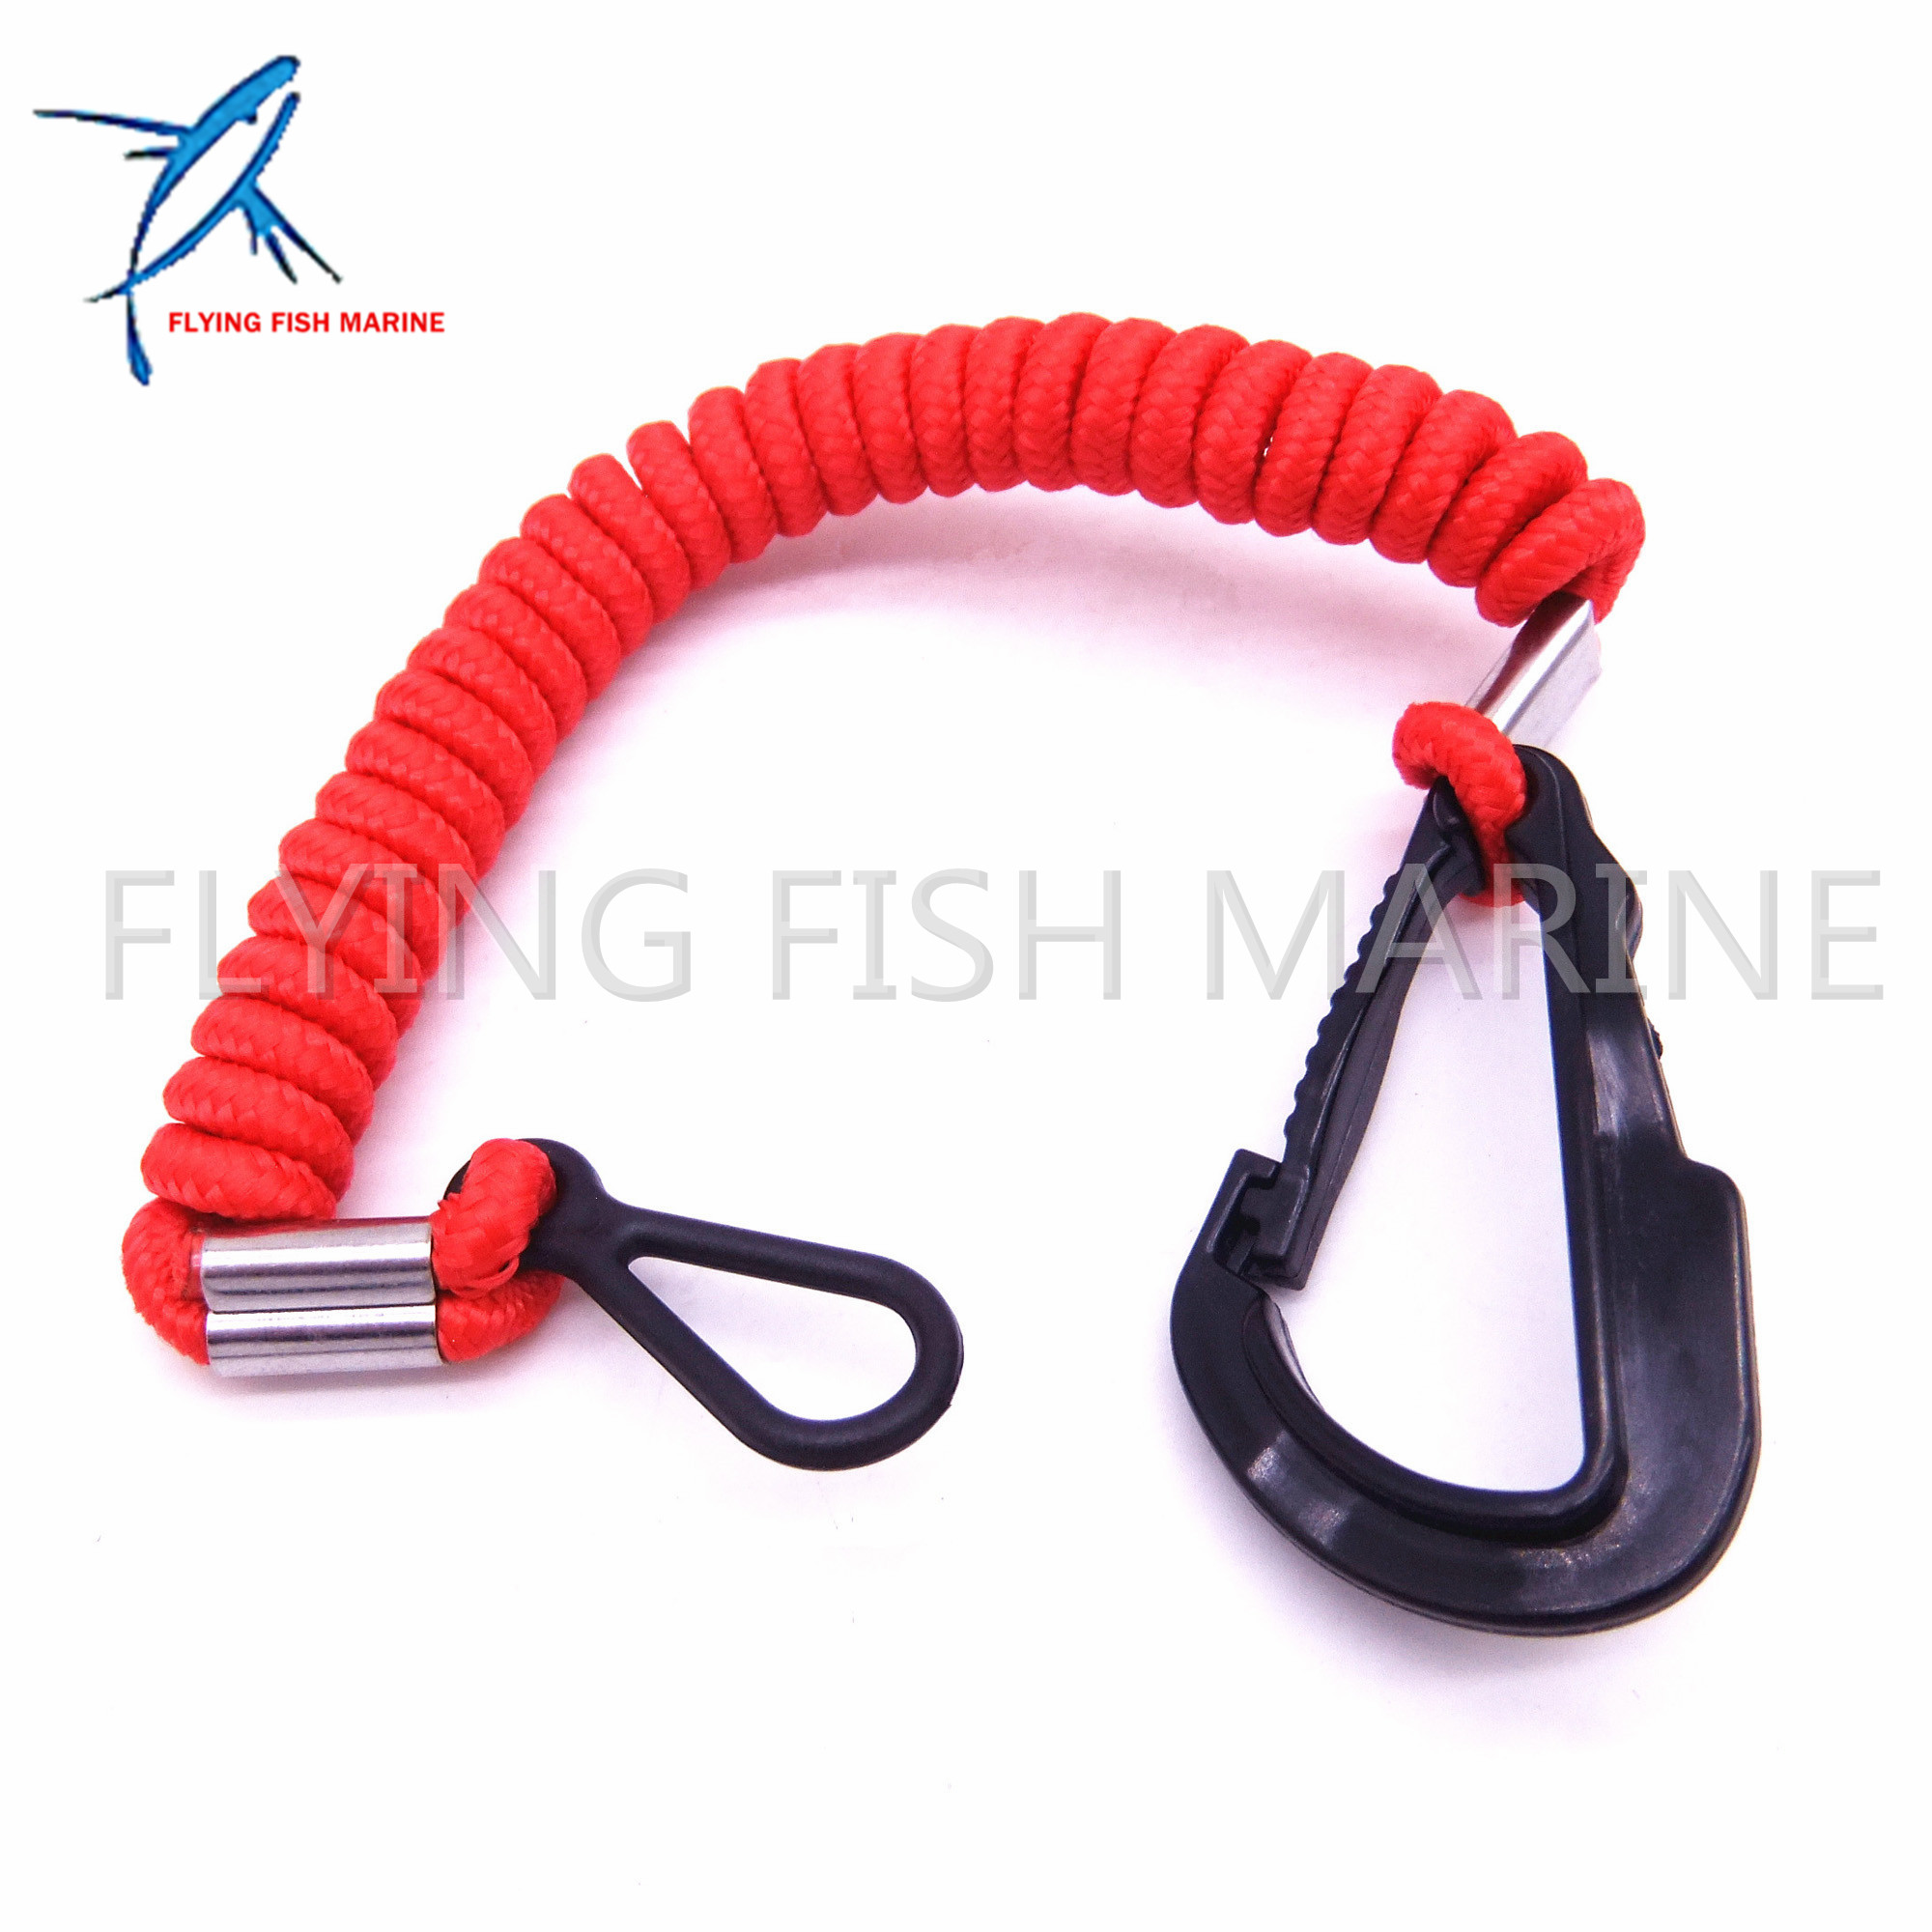 Fishing Reel Handle Folding Rotary Plastic FoldingPower Handle Grip Fishing Spinning Reel Handle Repair Parts Fishing Tackle Accessories Useful and Practical